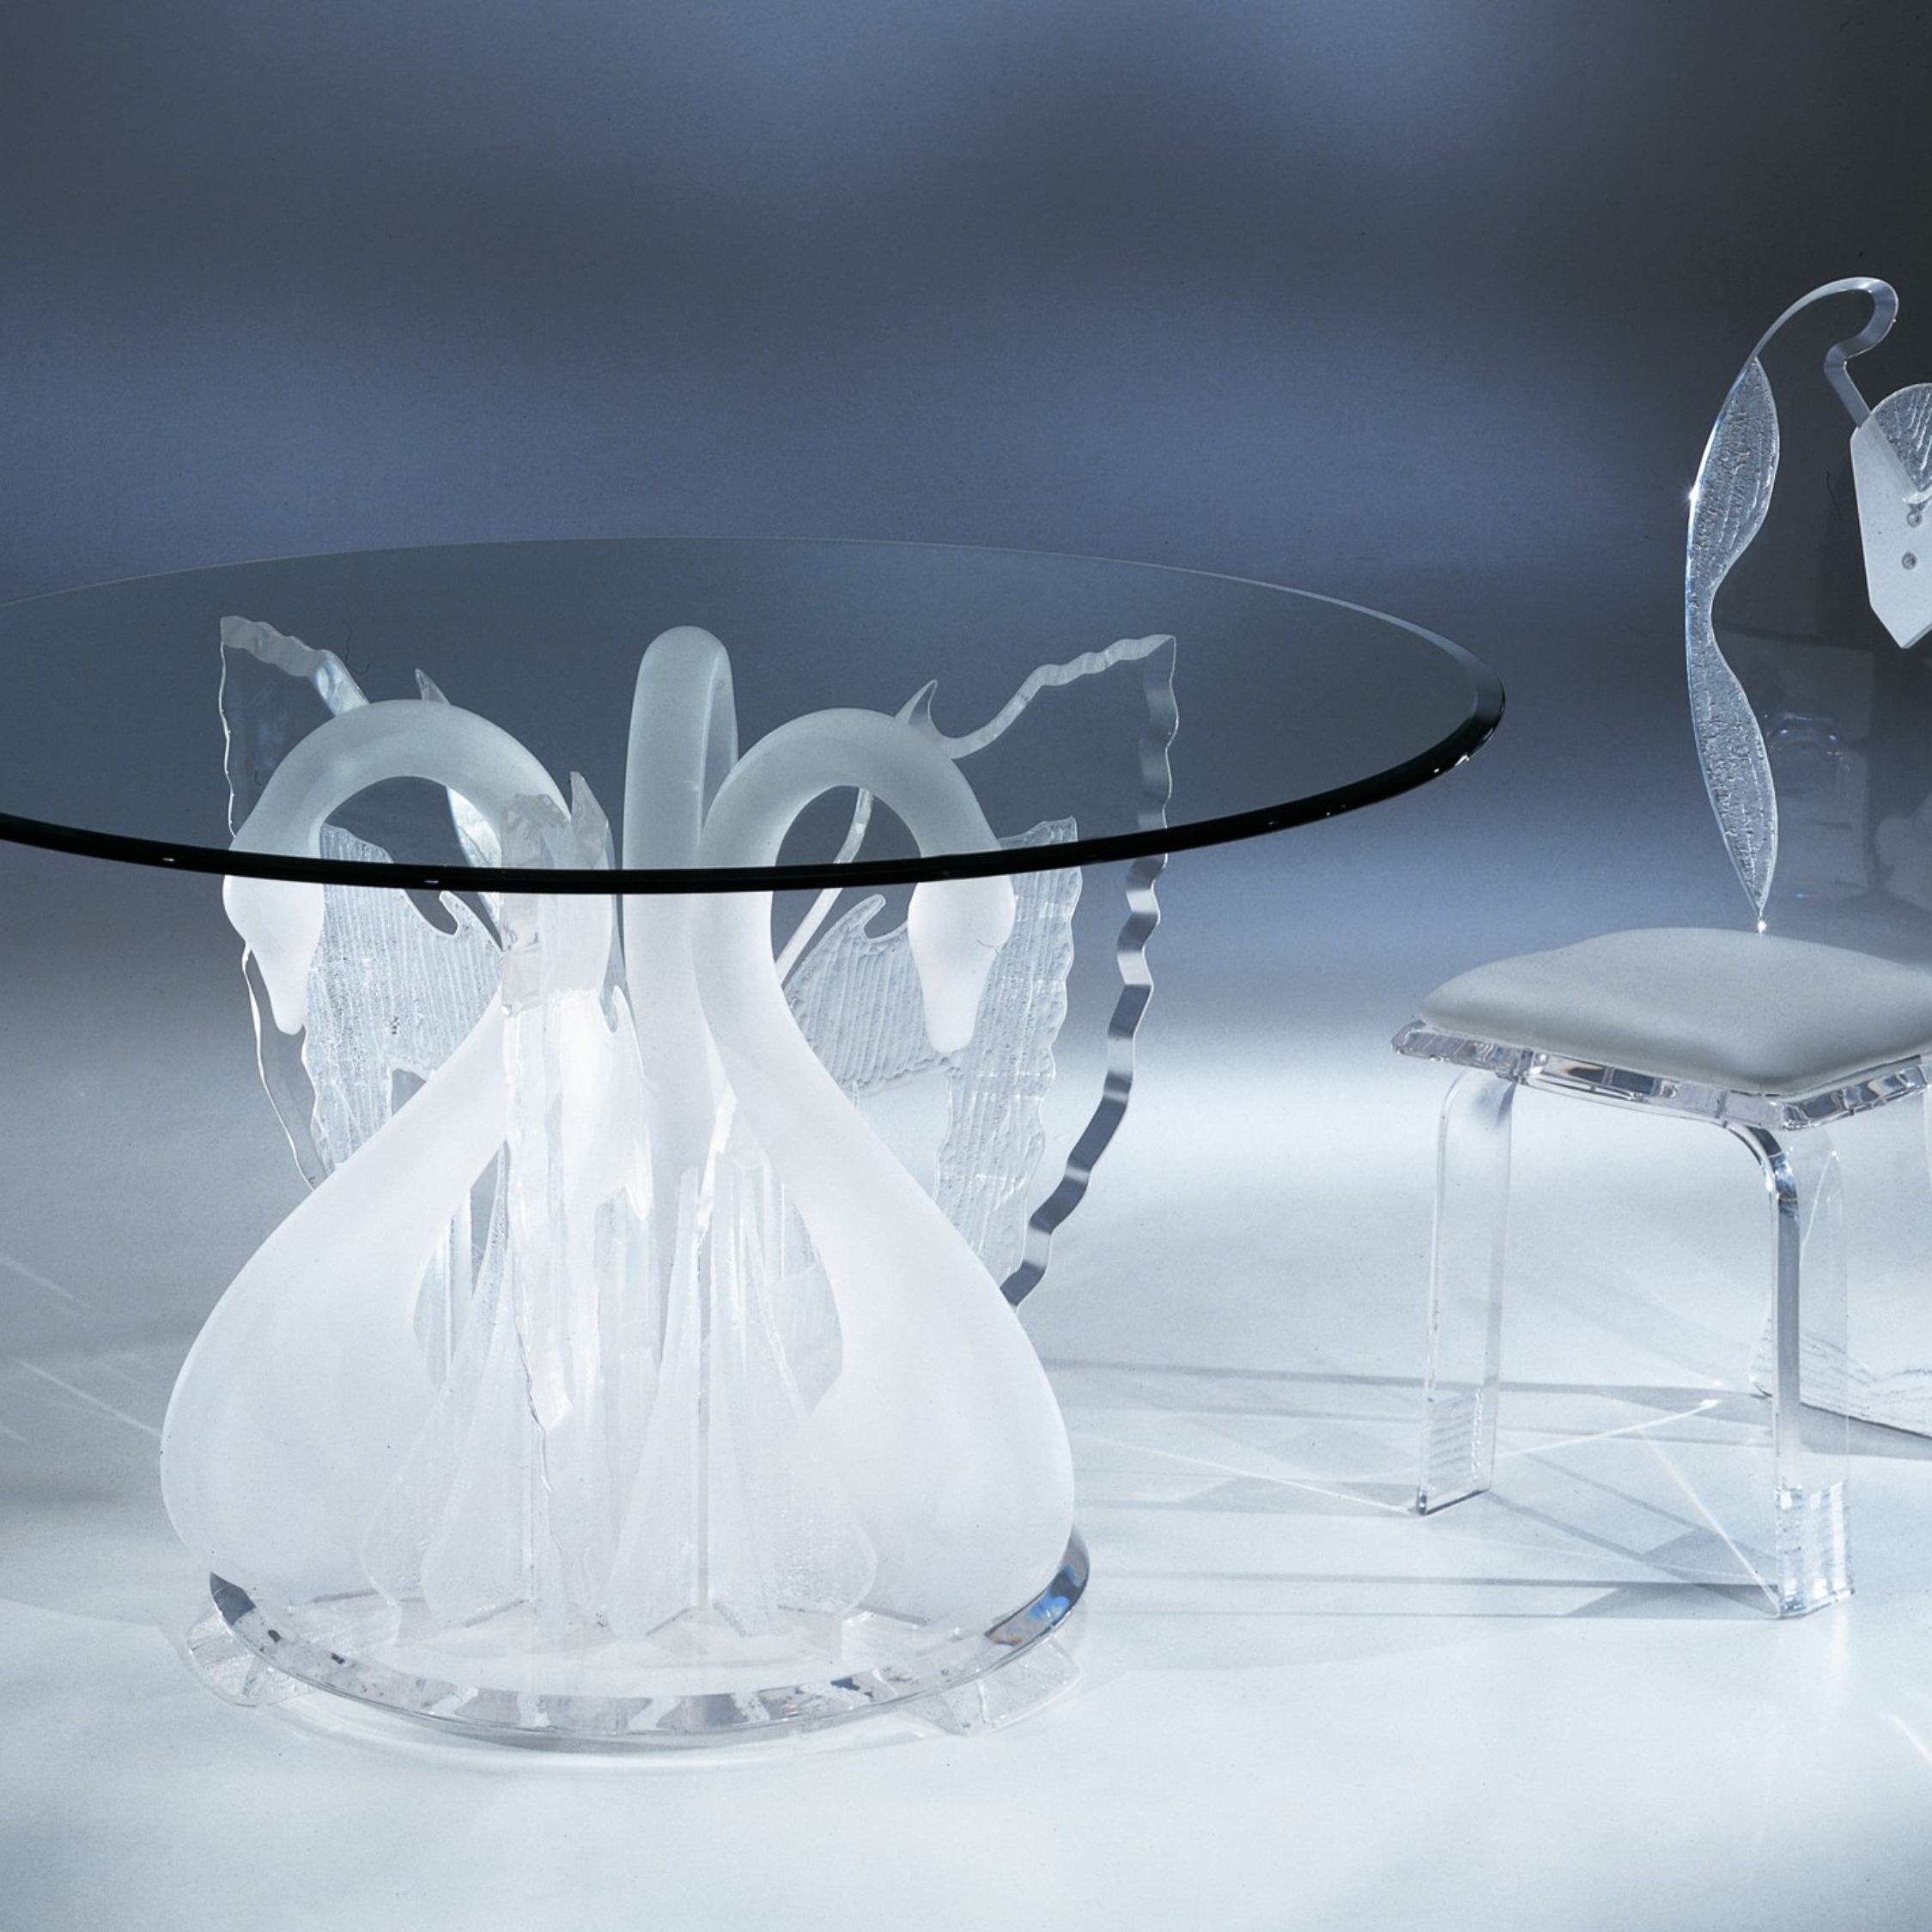 Legend Swan Dinette, Acrylic Wall Art, Acrylic Furniture In Well Liked Round Acrylic Dining Tables (View 10 of 25)